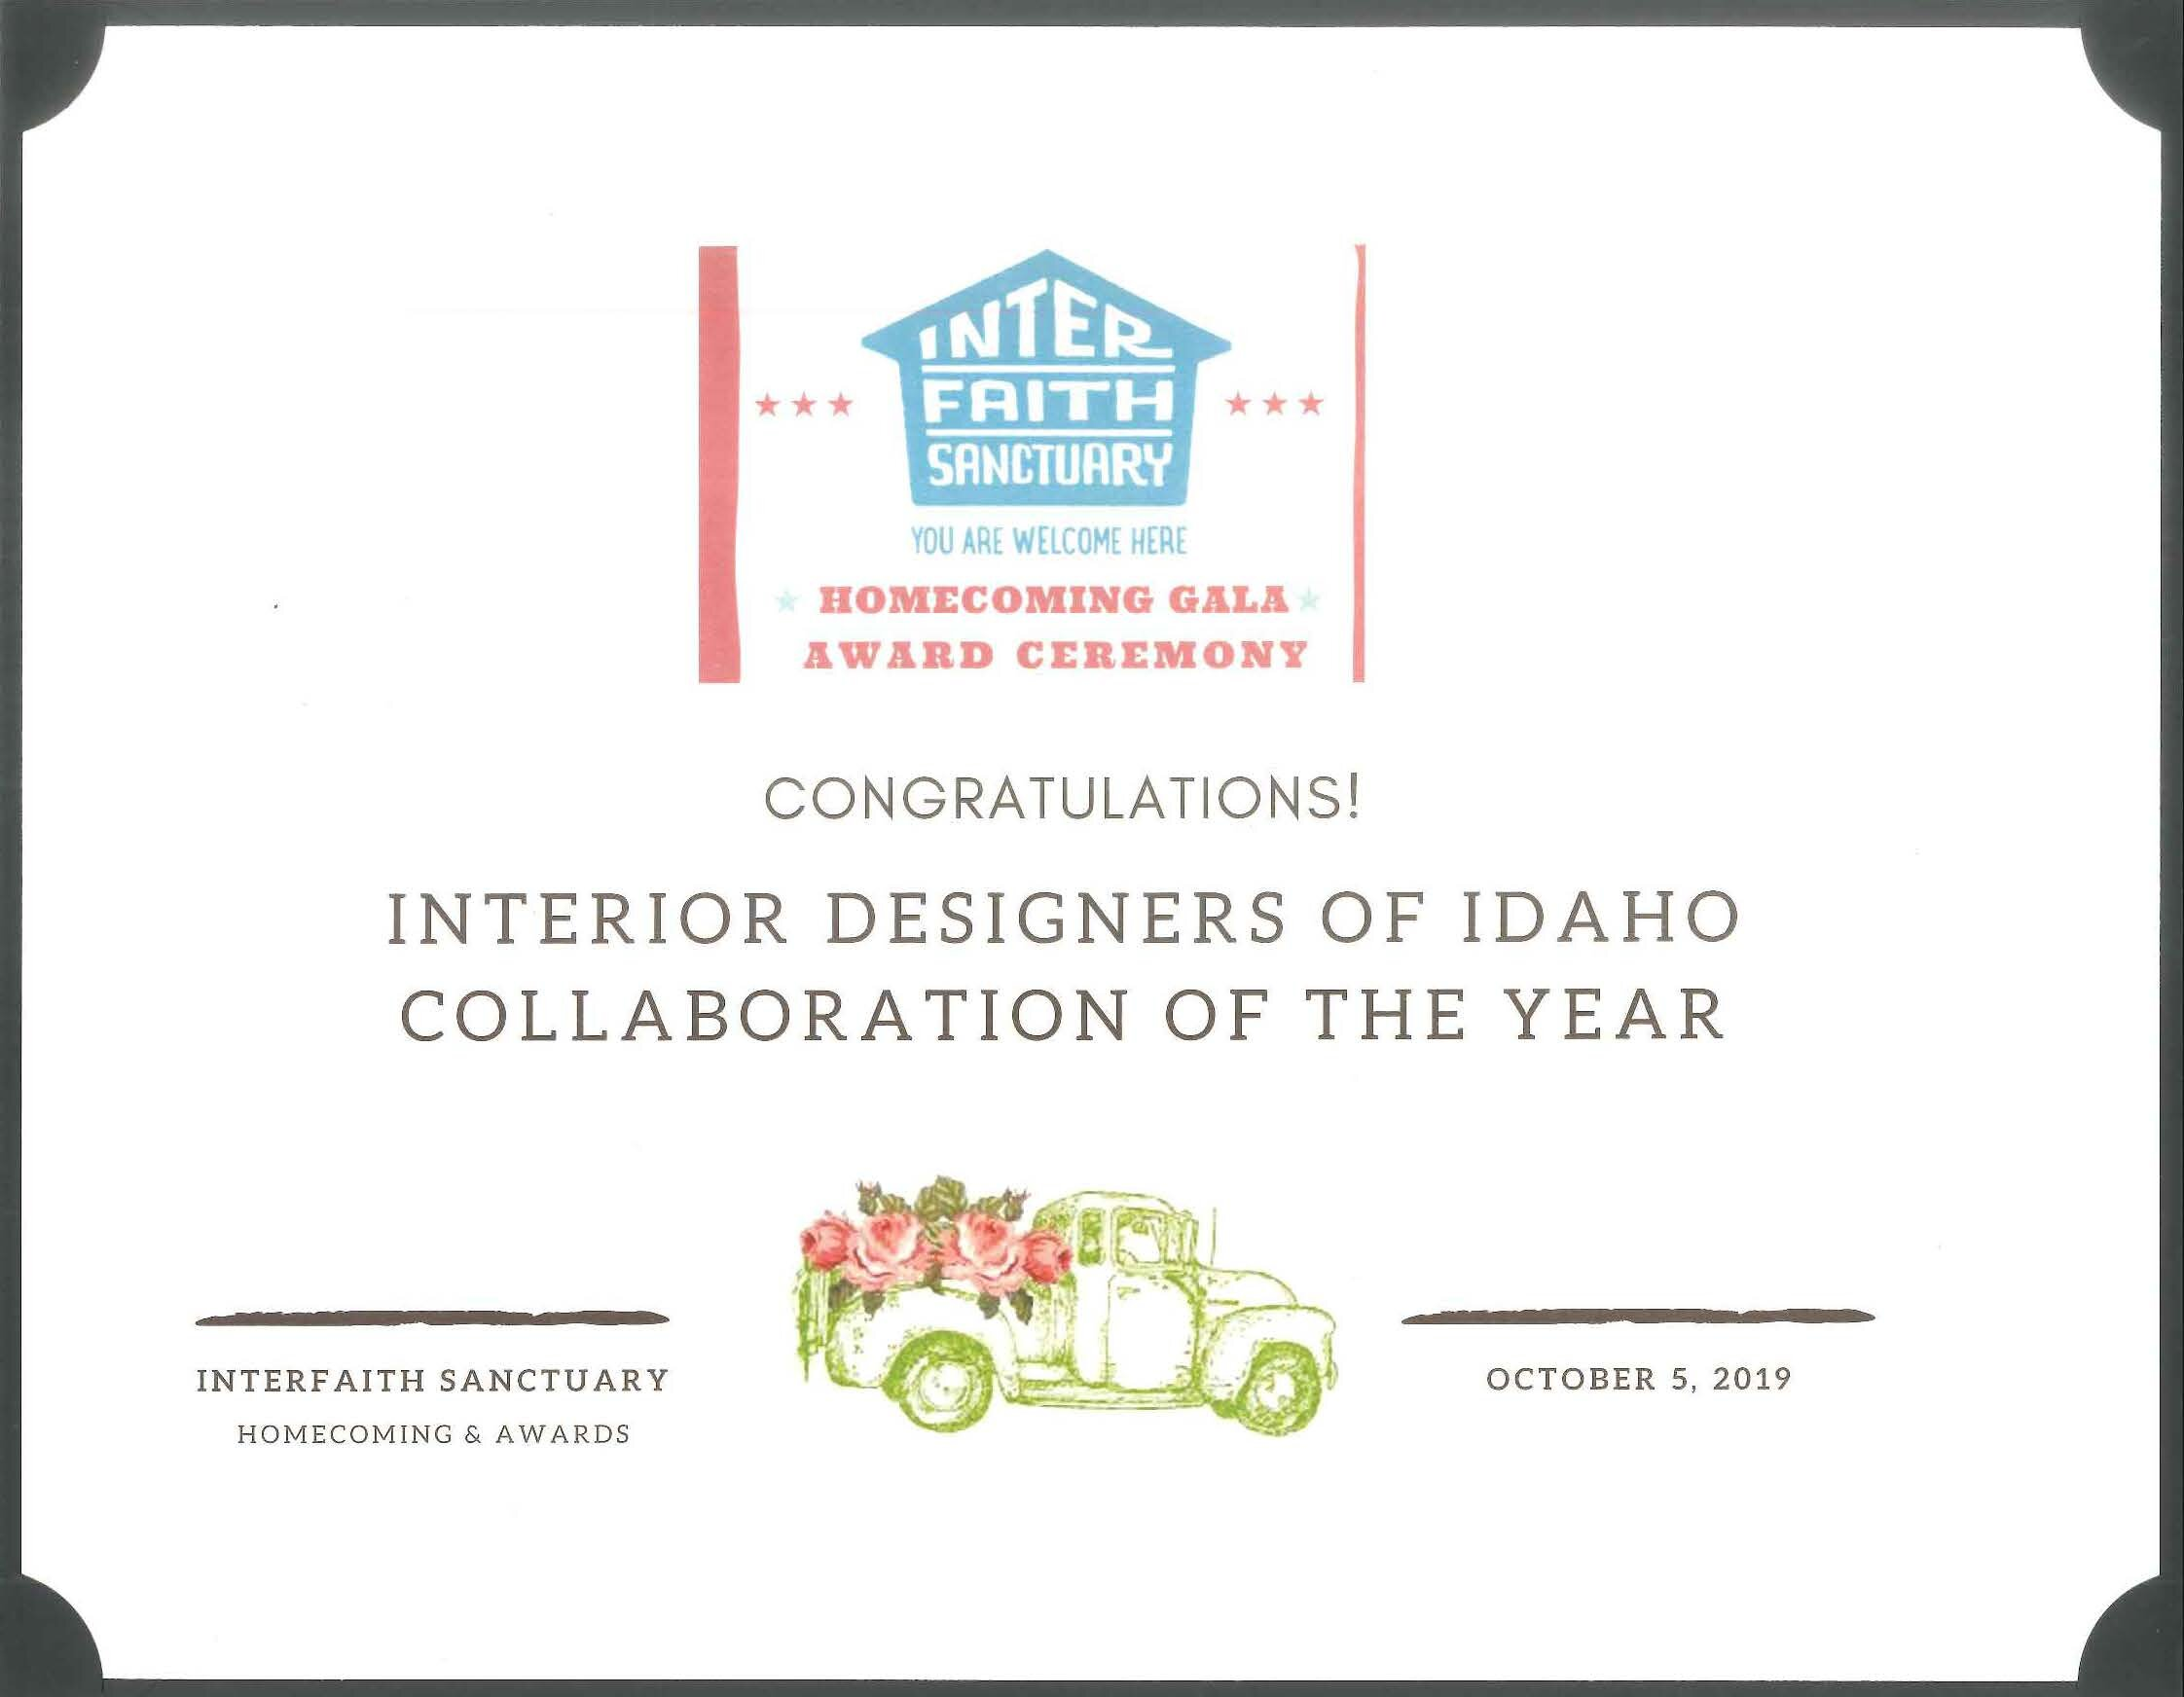 Collaboration of the Year Award